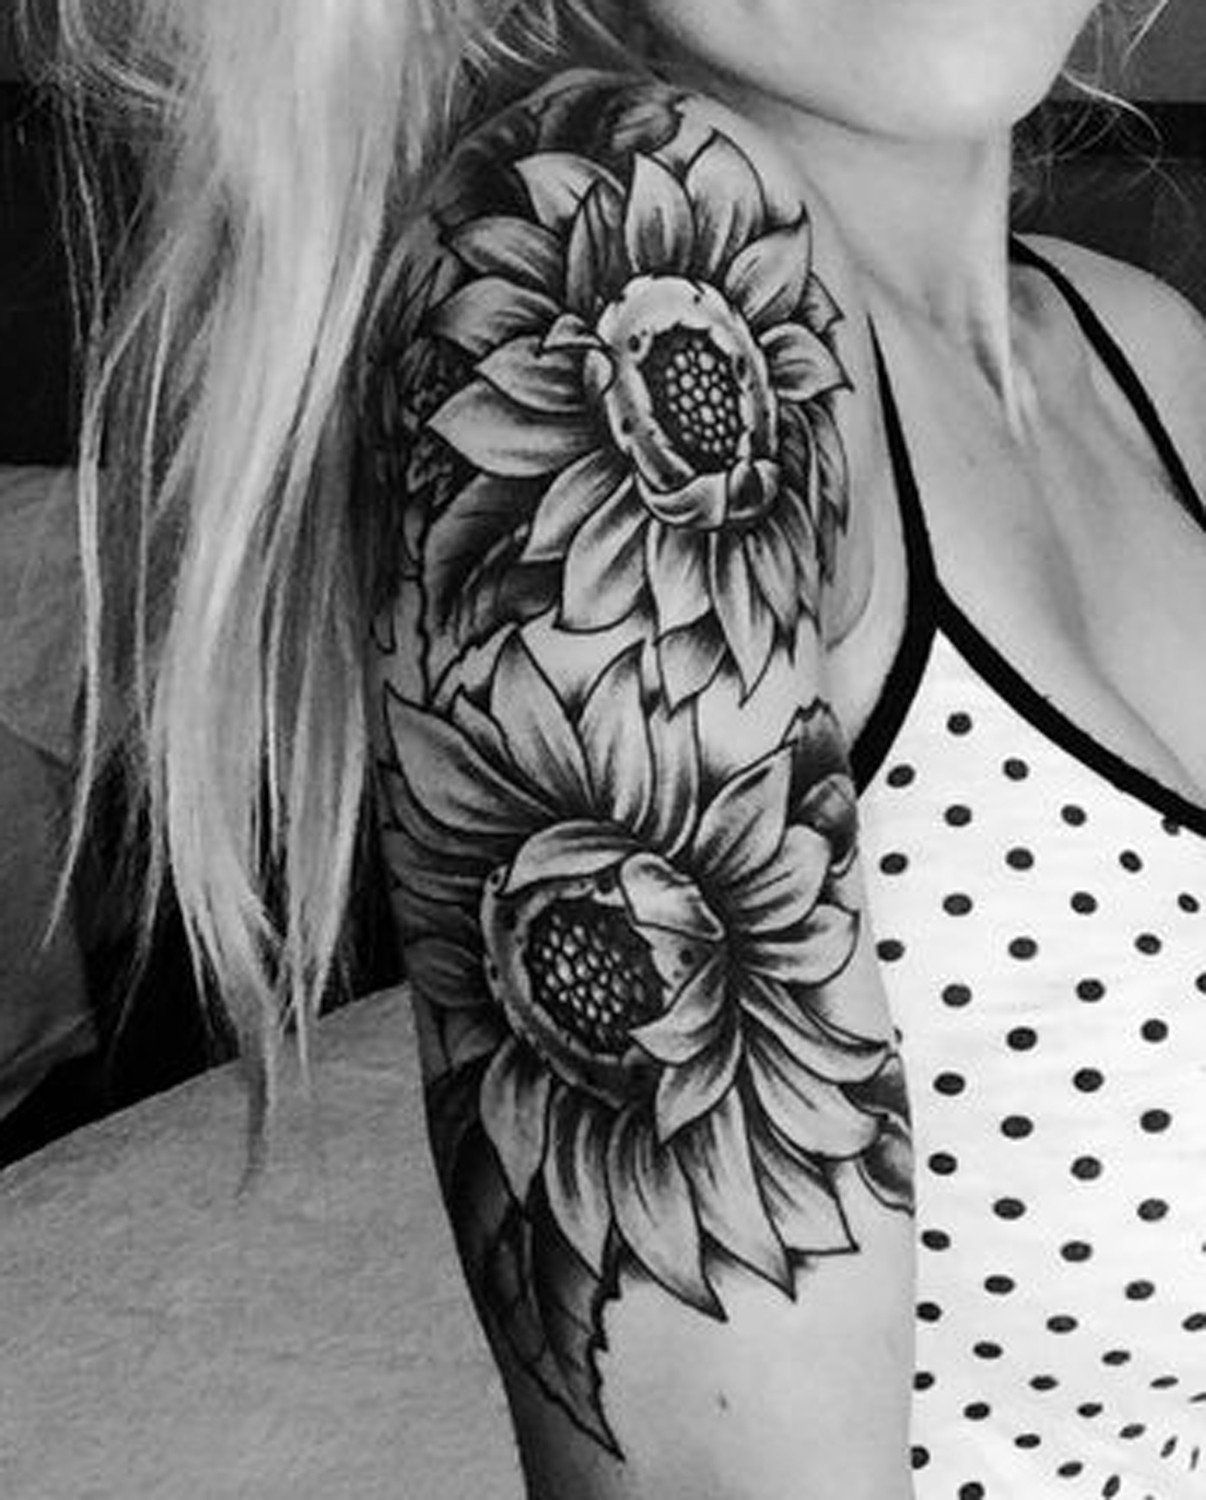 LATEST SUNFLOWER TATTOO DESIGNS FOR ATTRACTIVE WOMEN'S LOOK 2